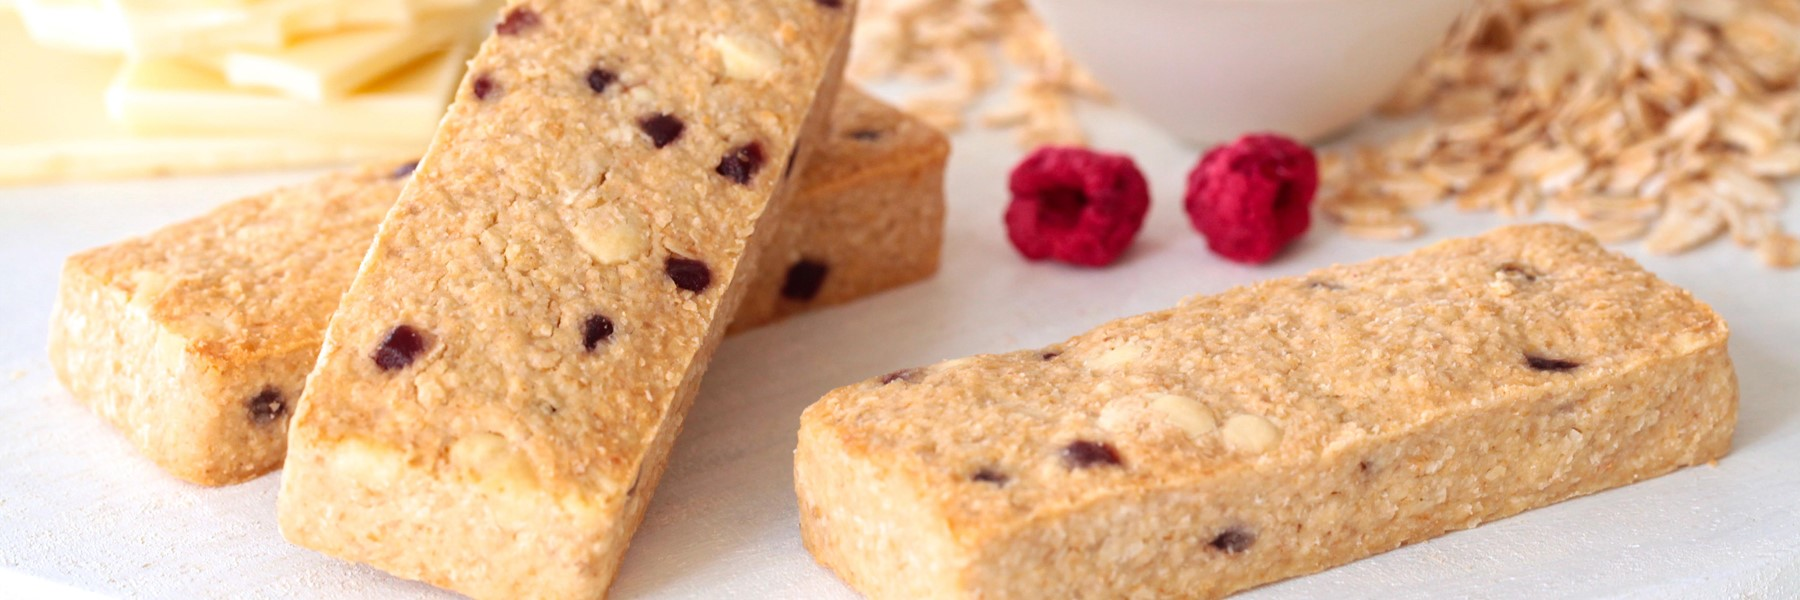 Our delicious Baked Oaty Slices taste just like homemade! See the full range here